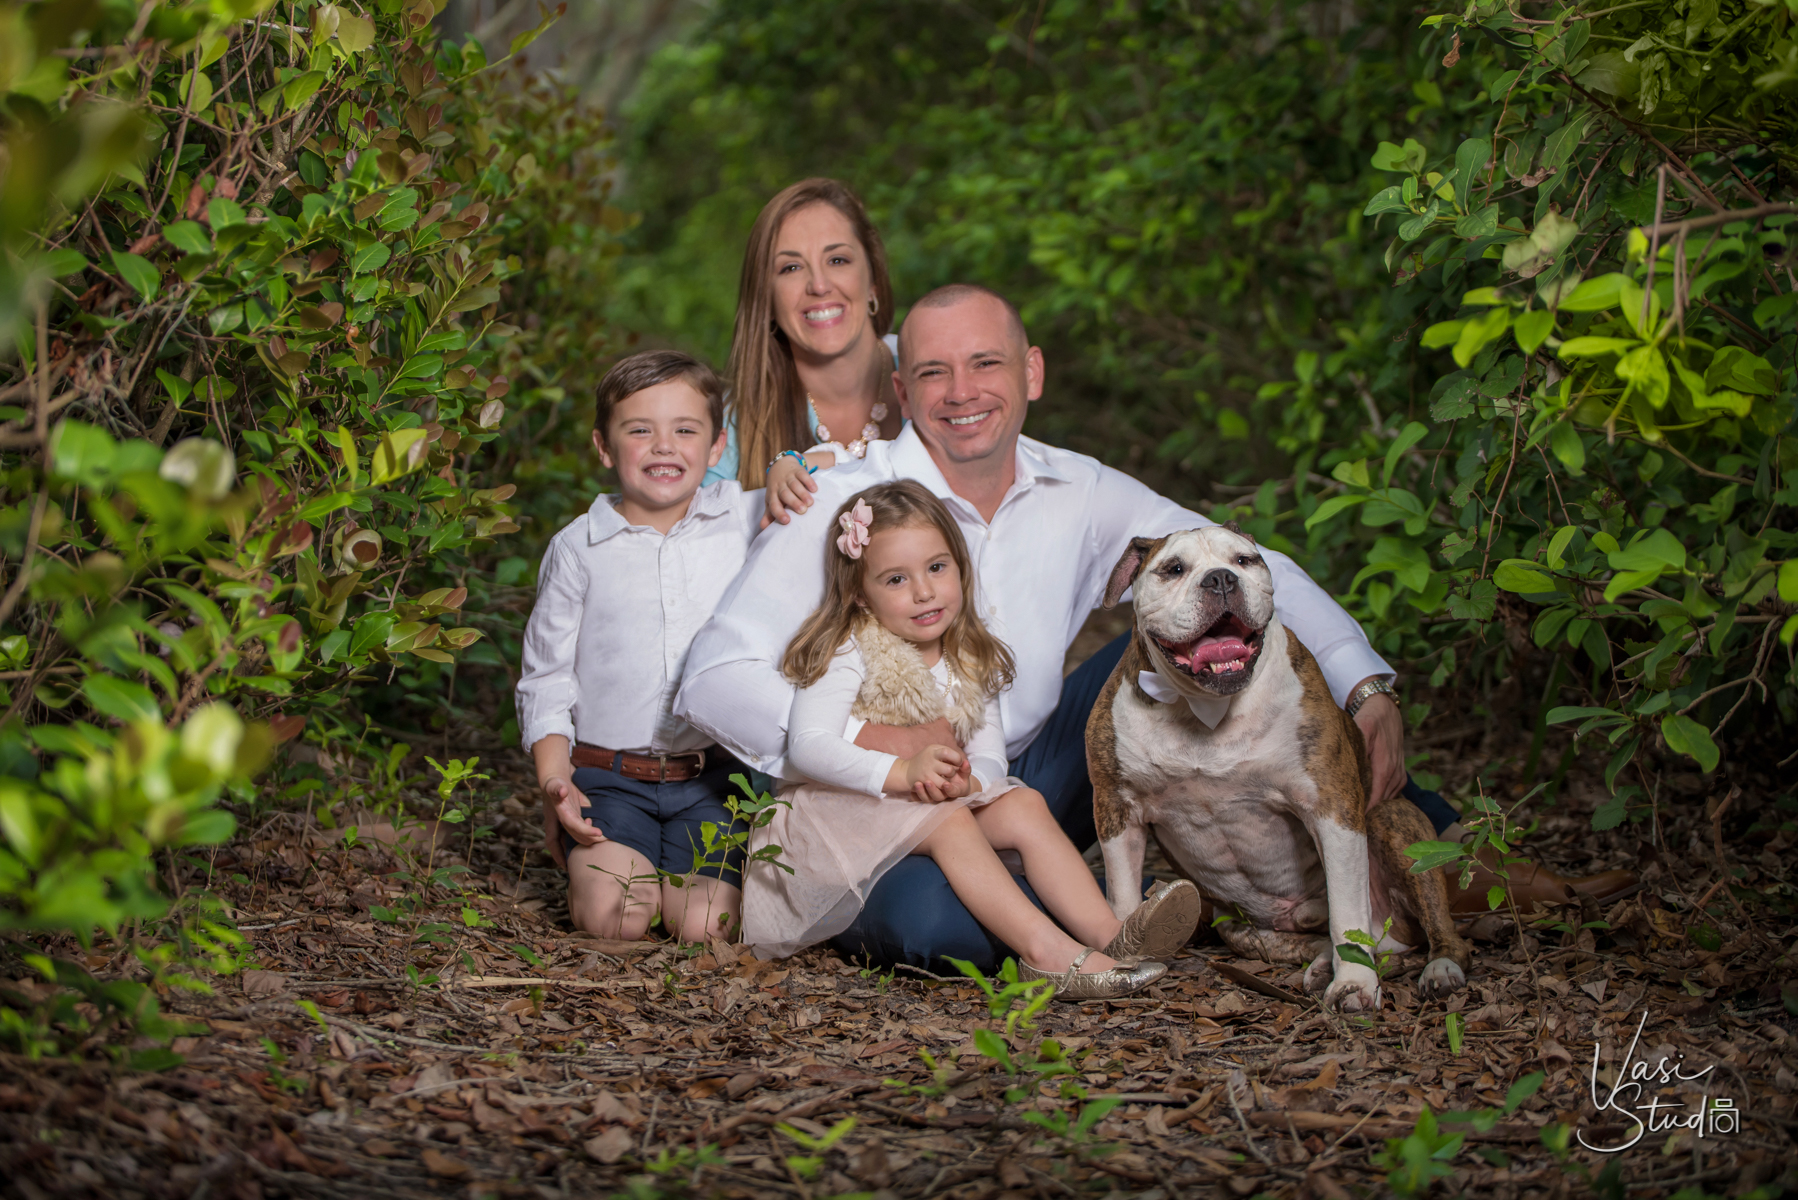 Seasonal family photo sessions available from Vasi Siedman.